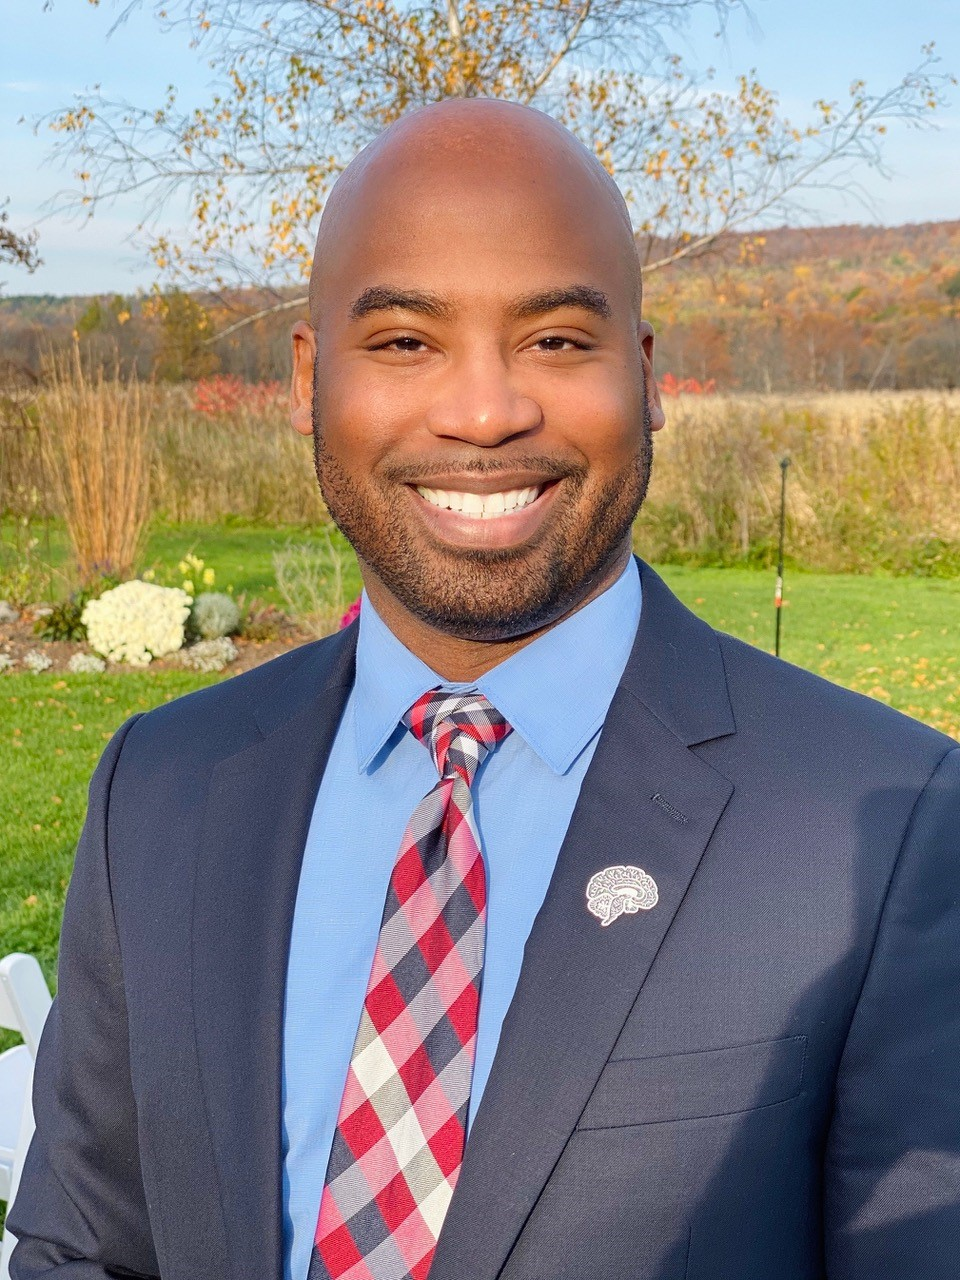 Nathan A. Smith is wearing a dark blue blazer with a blue shirt and red and blue checkered tie. He is smiling witha short beard. He is standing outside on a fall day.